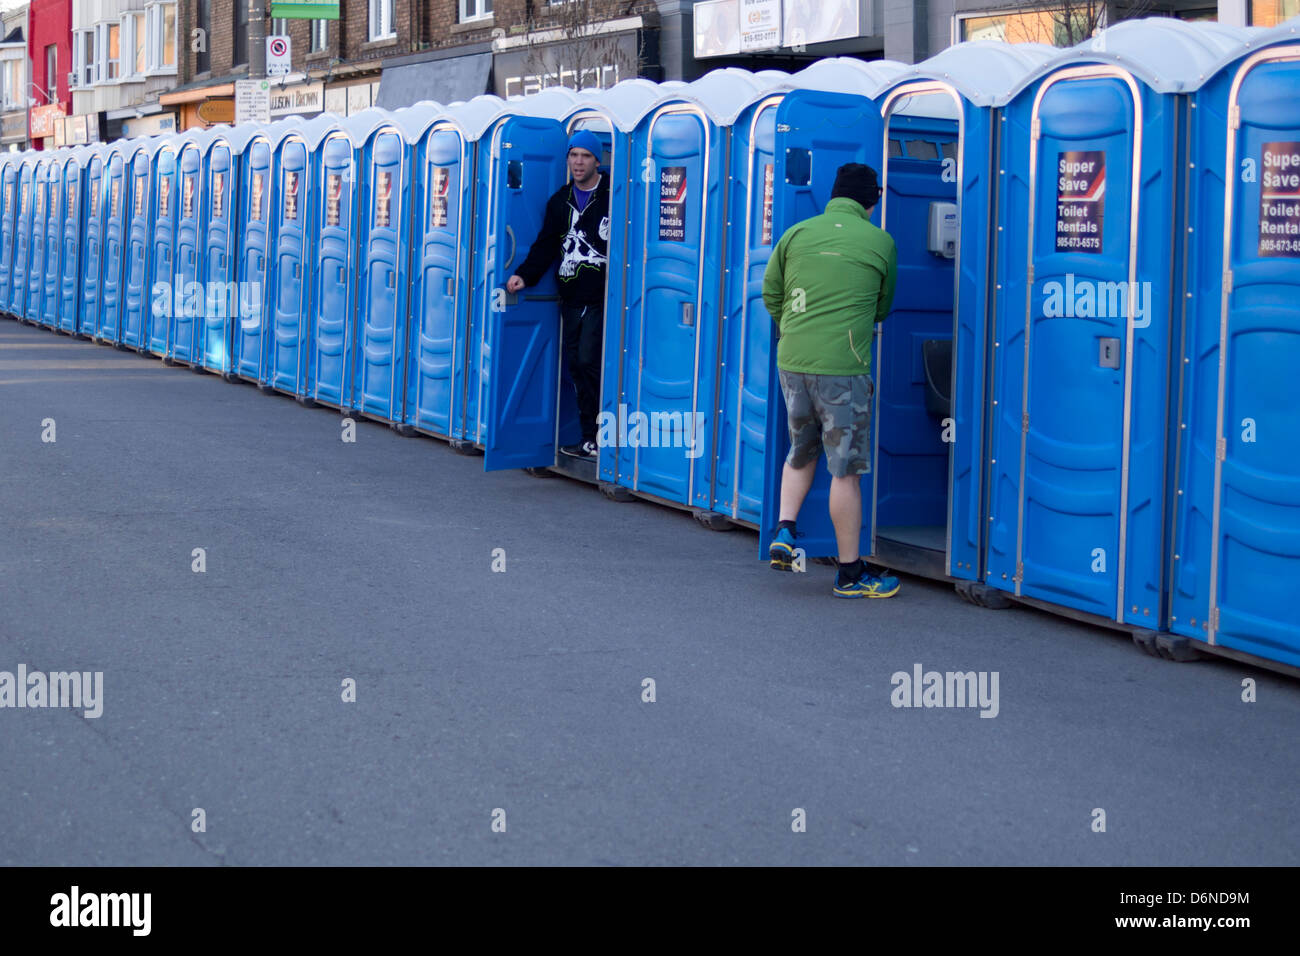 One Person Enters A Portable Toilet While Another Exits A Portable Toilet  Ahead Of The 2013